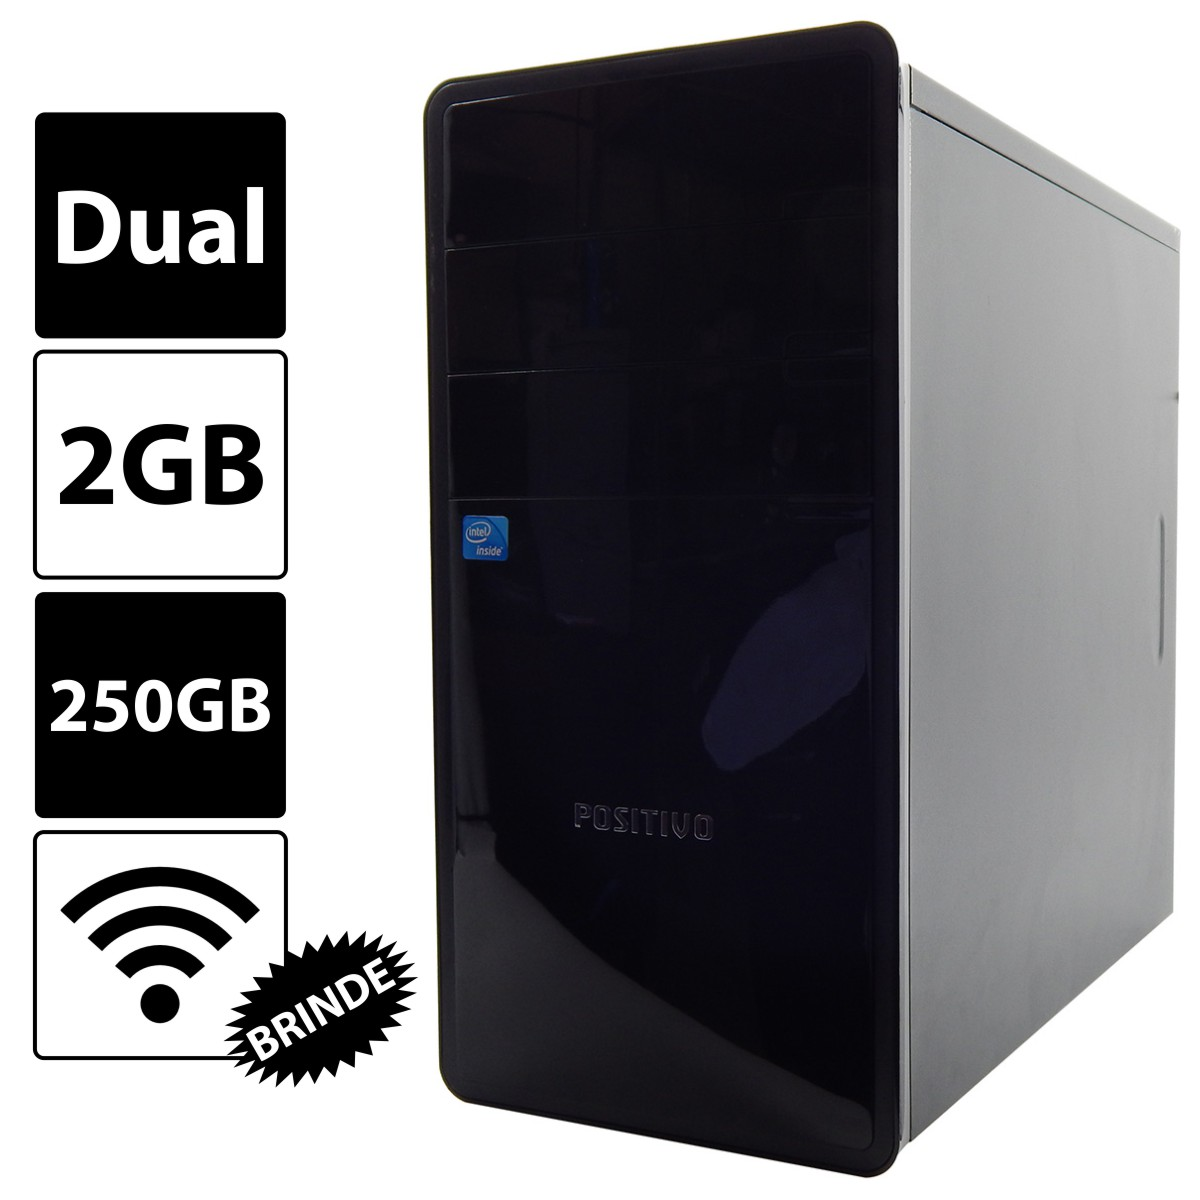 PC POSITIVO UNIQUE K2080 Celeron 847 2Gb 250Gb DVD - Reembalado